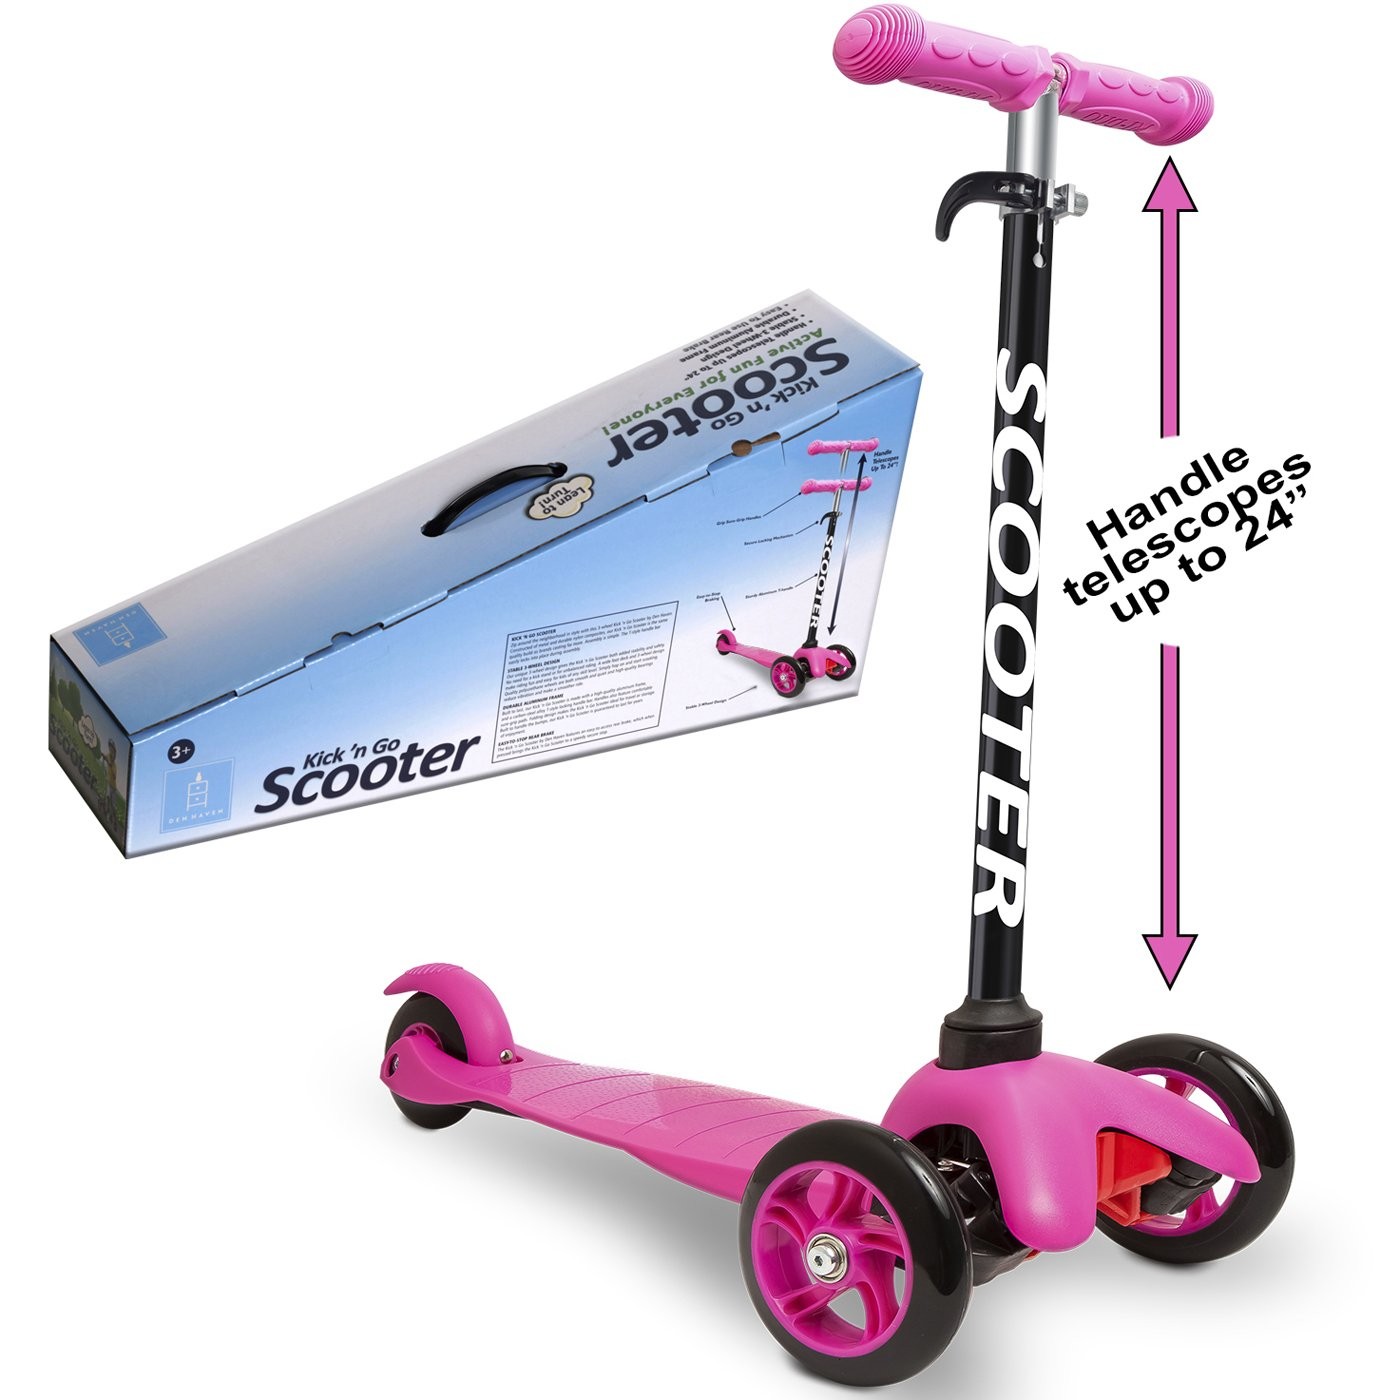 Den Haven Scooter for Kids - Deluxe Aluminum 3 Wheel Glider with Kick n Go, Lean 2 Turn, Step 4 Brake-Pink (Pink) by Den Haven (Image #4)